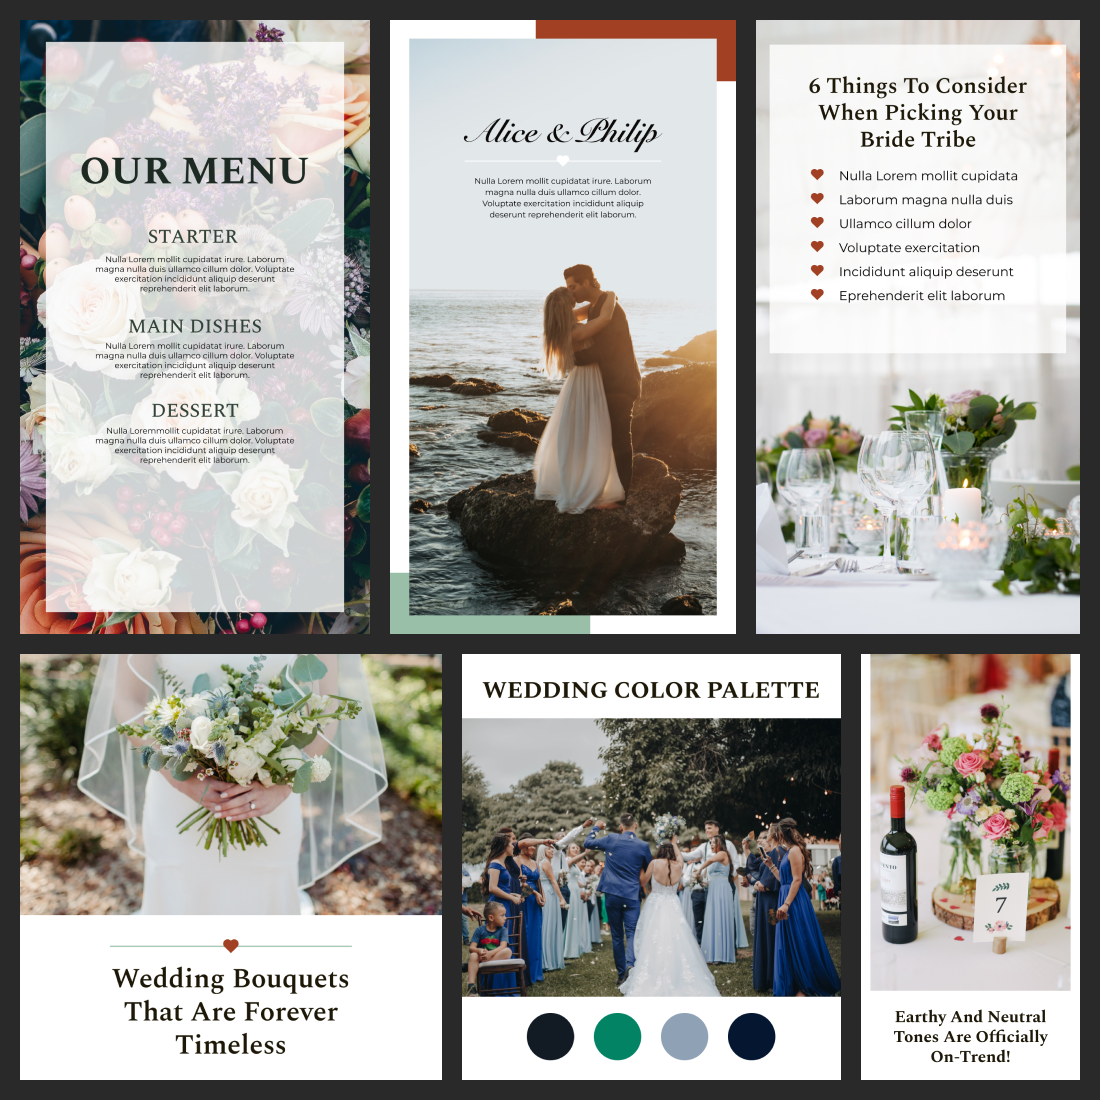 Wedding Instagram Template: 30 Posts, 15 Stories + 6 Instagram Highlight Icons Cover.